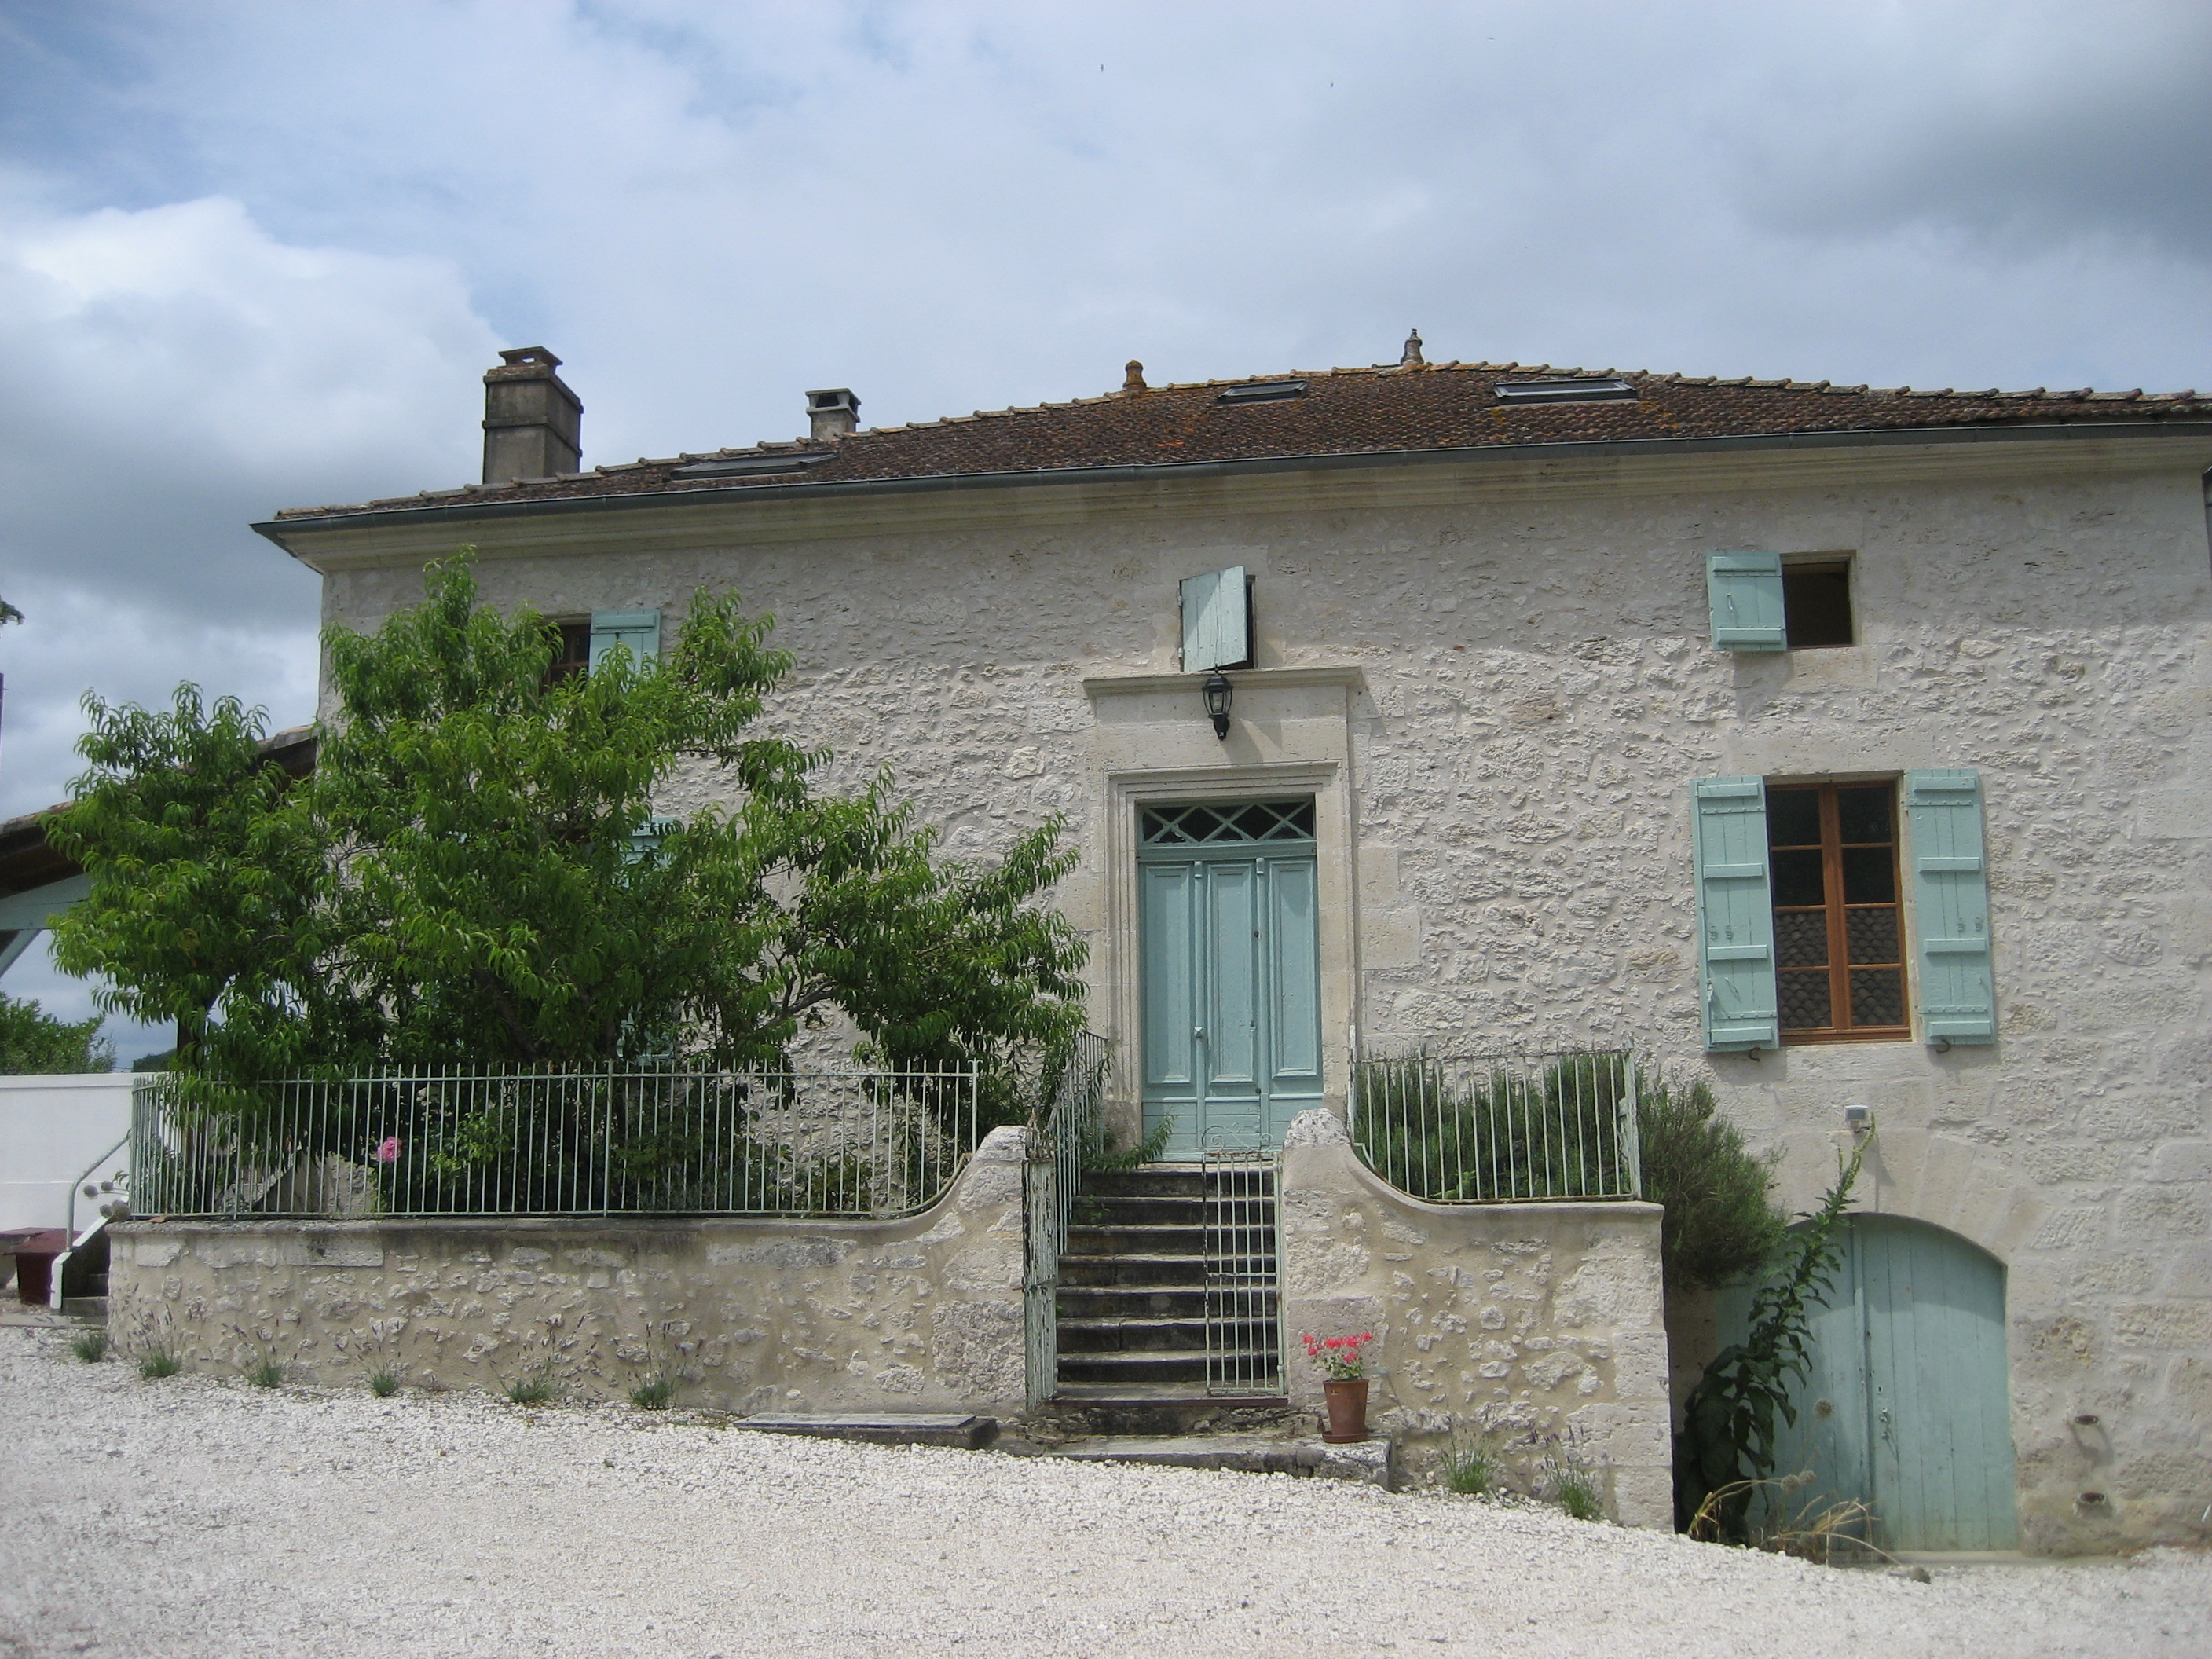 Val de costes b and b bed and breakfast aquitaine vacances - Chambre d hote tarn et garonne ...